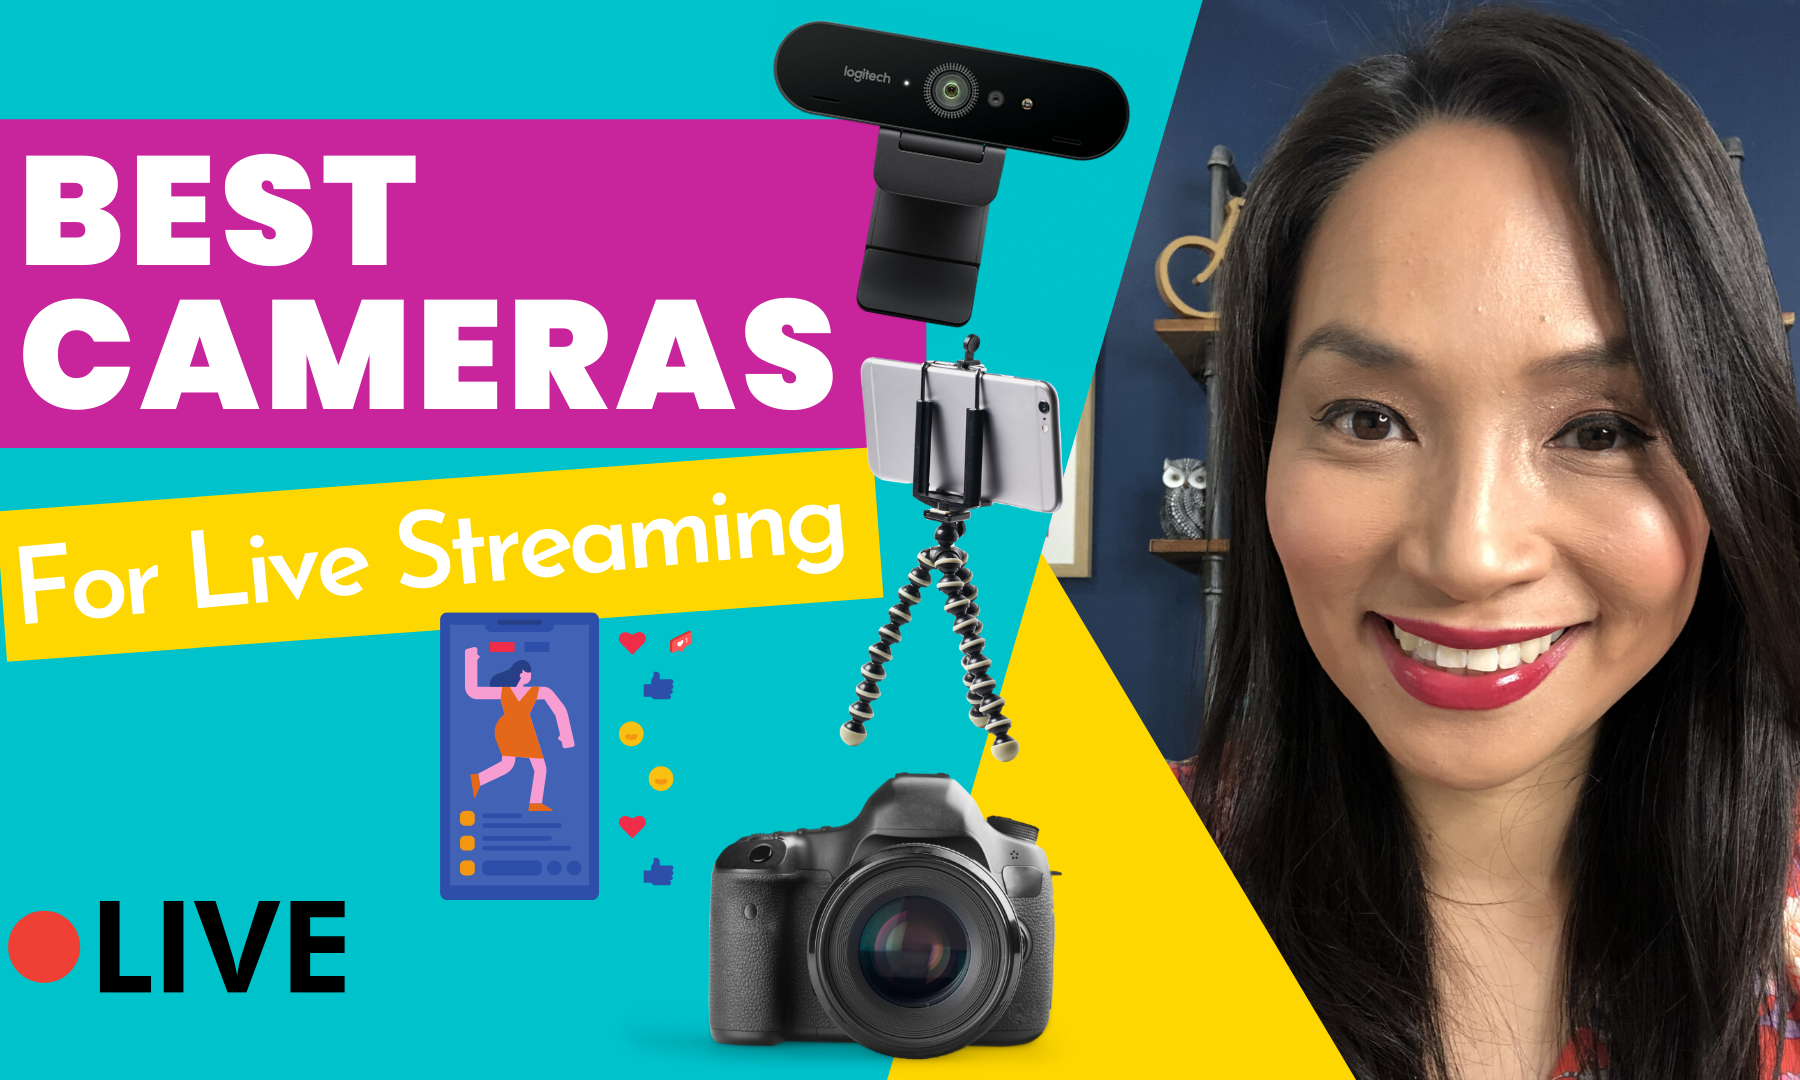 Best Cameras for Live Streaming